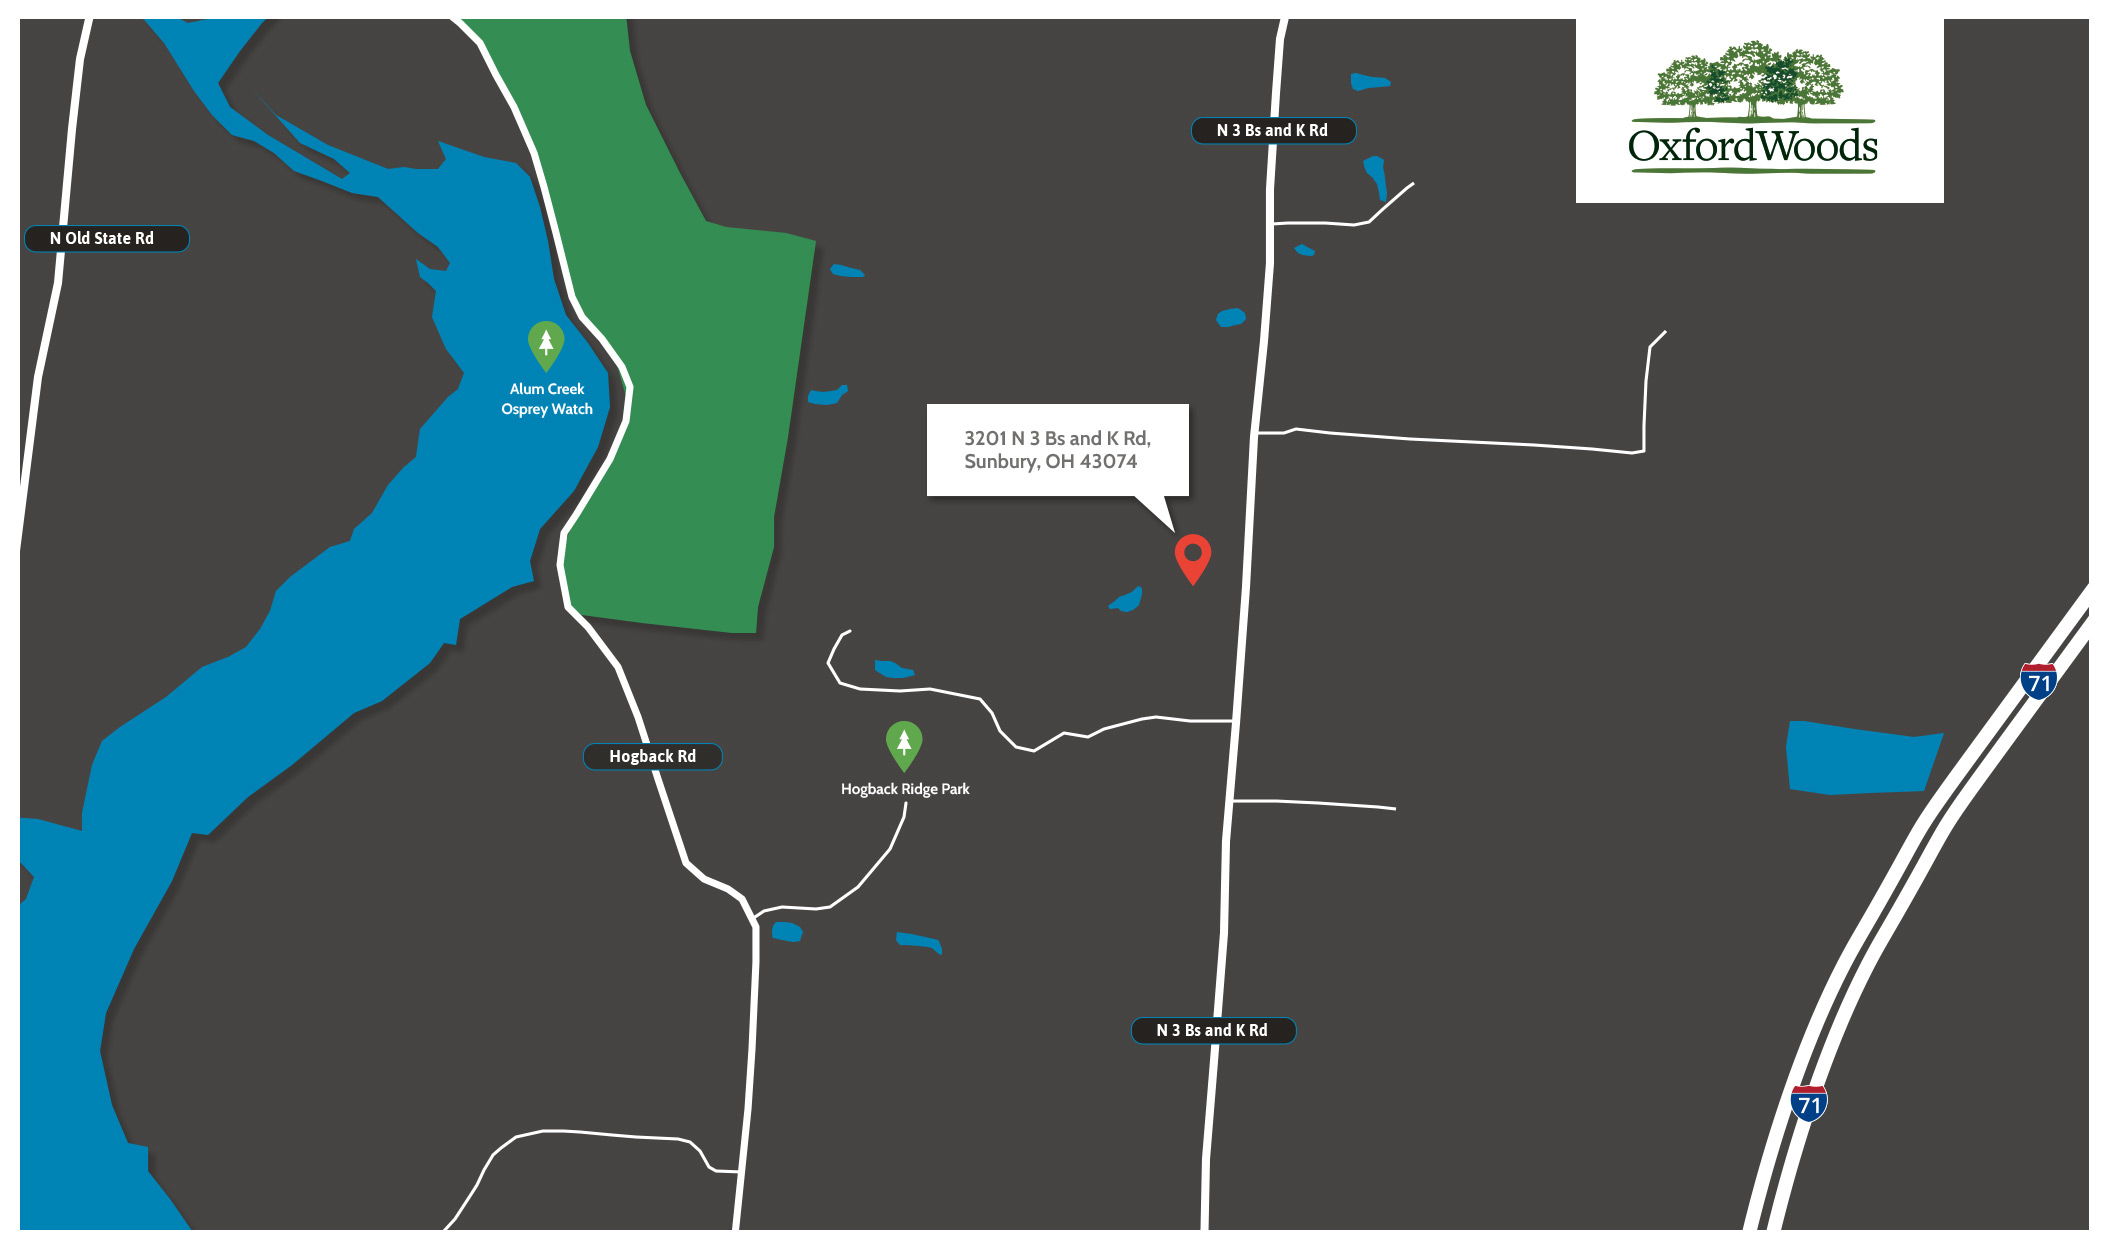 Oxford Woods Location Map